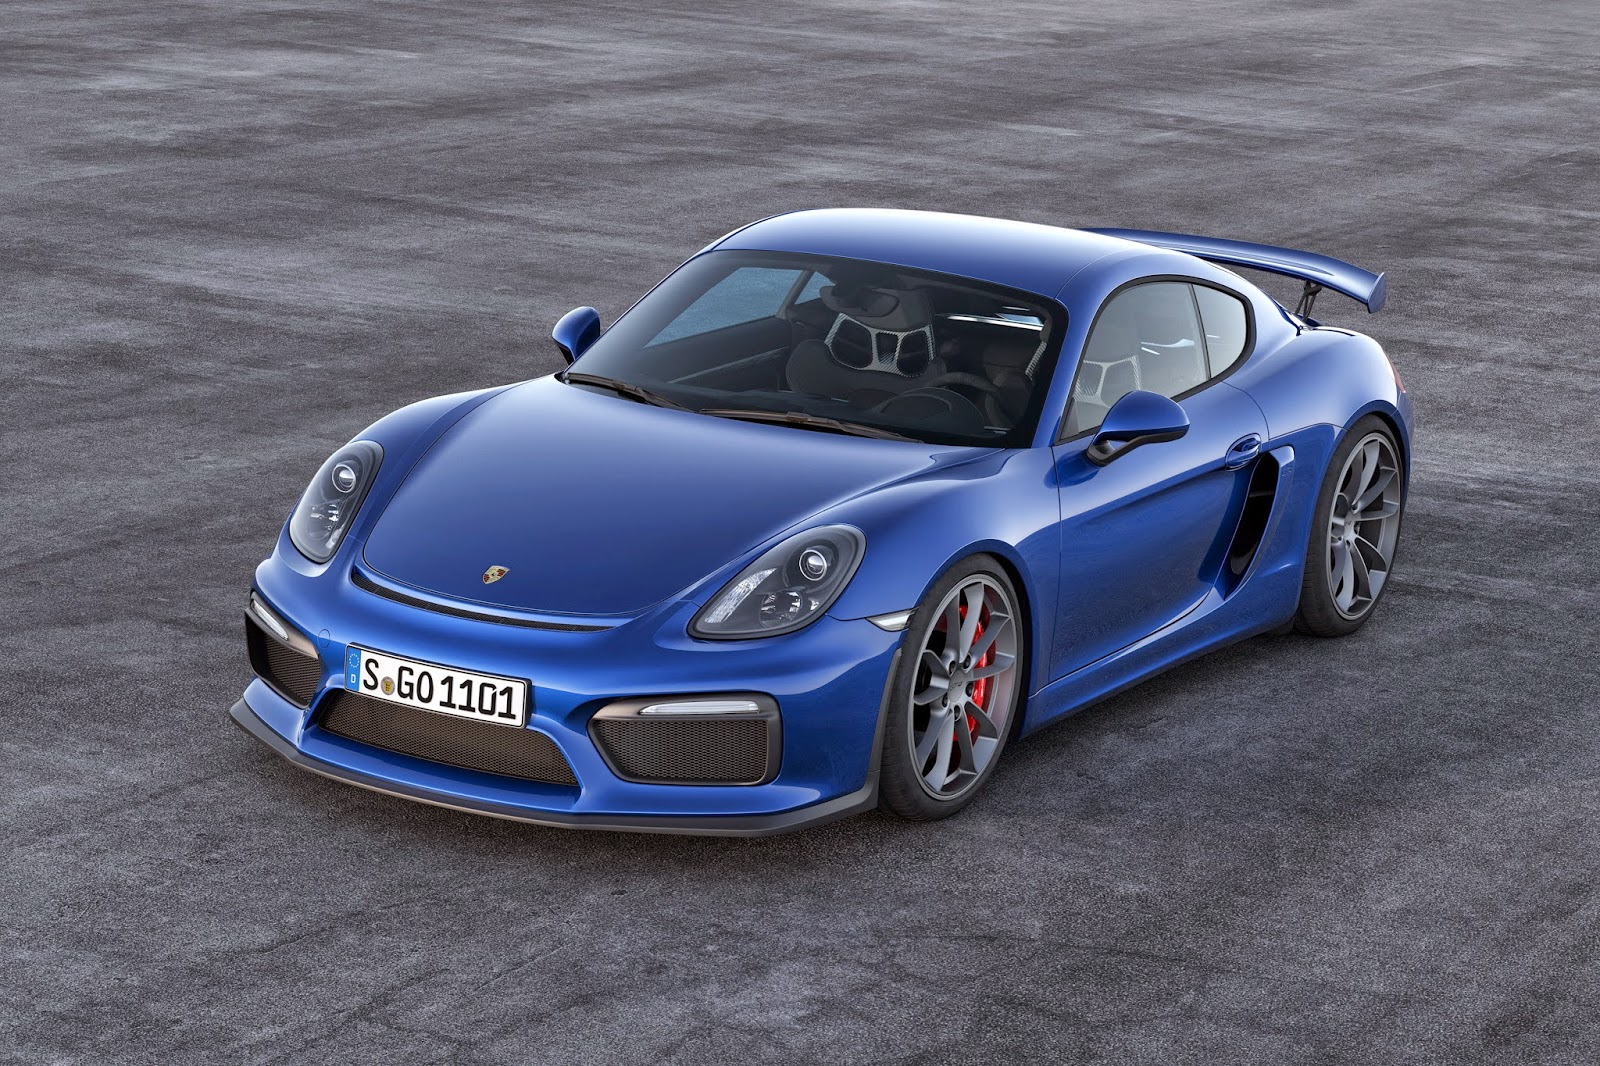 new porsche cayman gt4 vs used 39 997 39 911 gt3 w poll. Black Bedroom Furniture Sets. Home Design Ideas